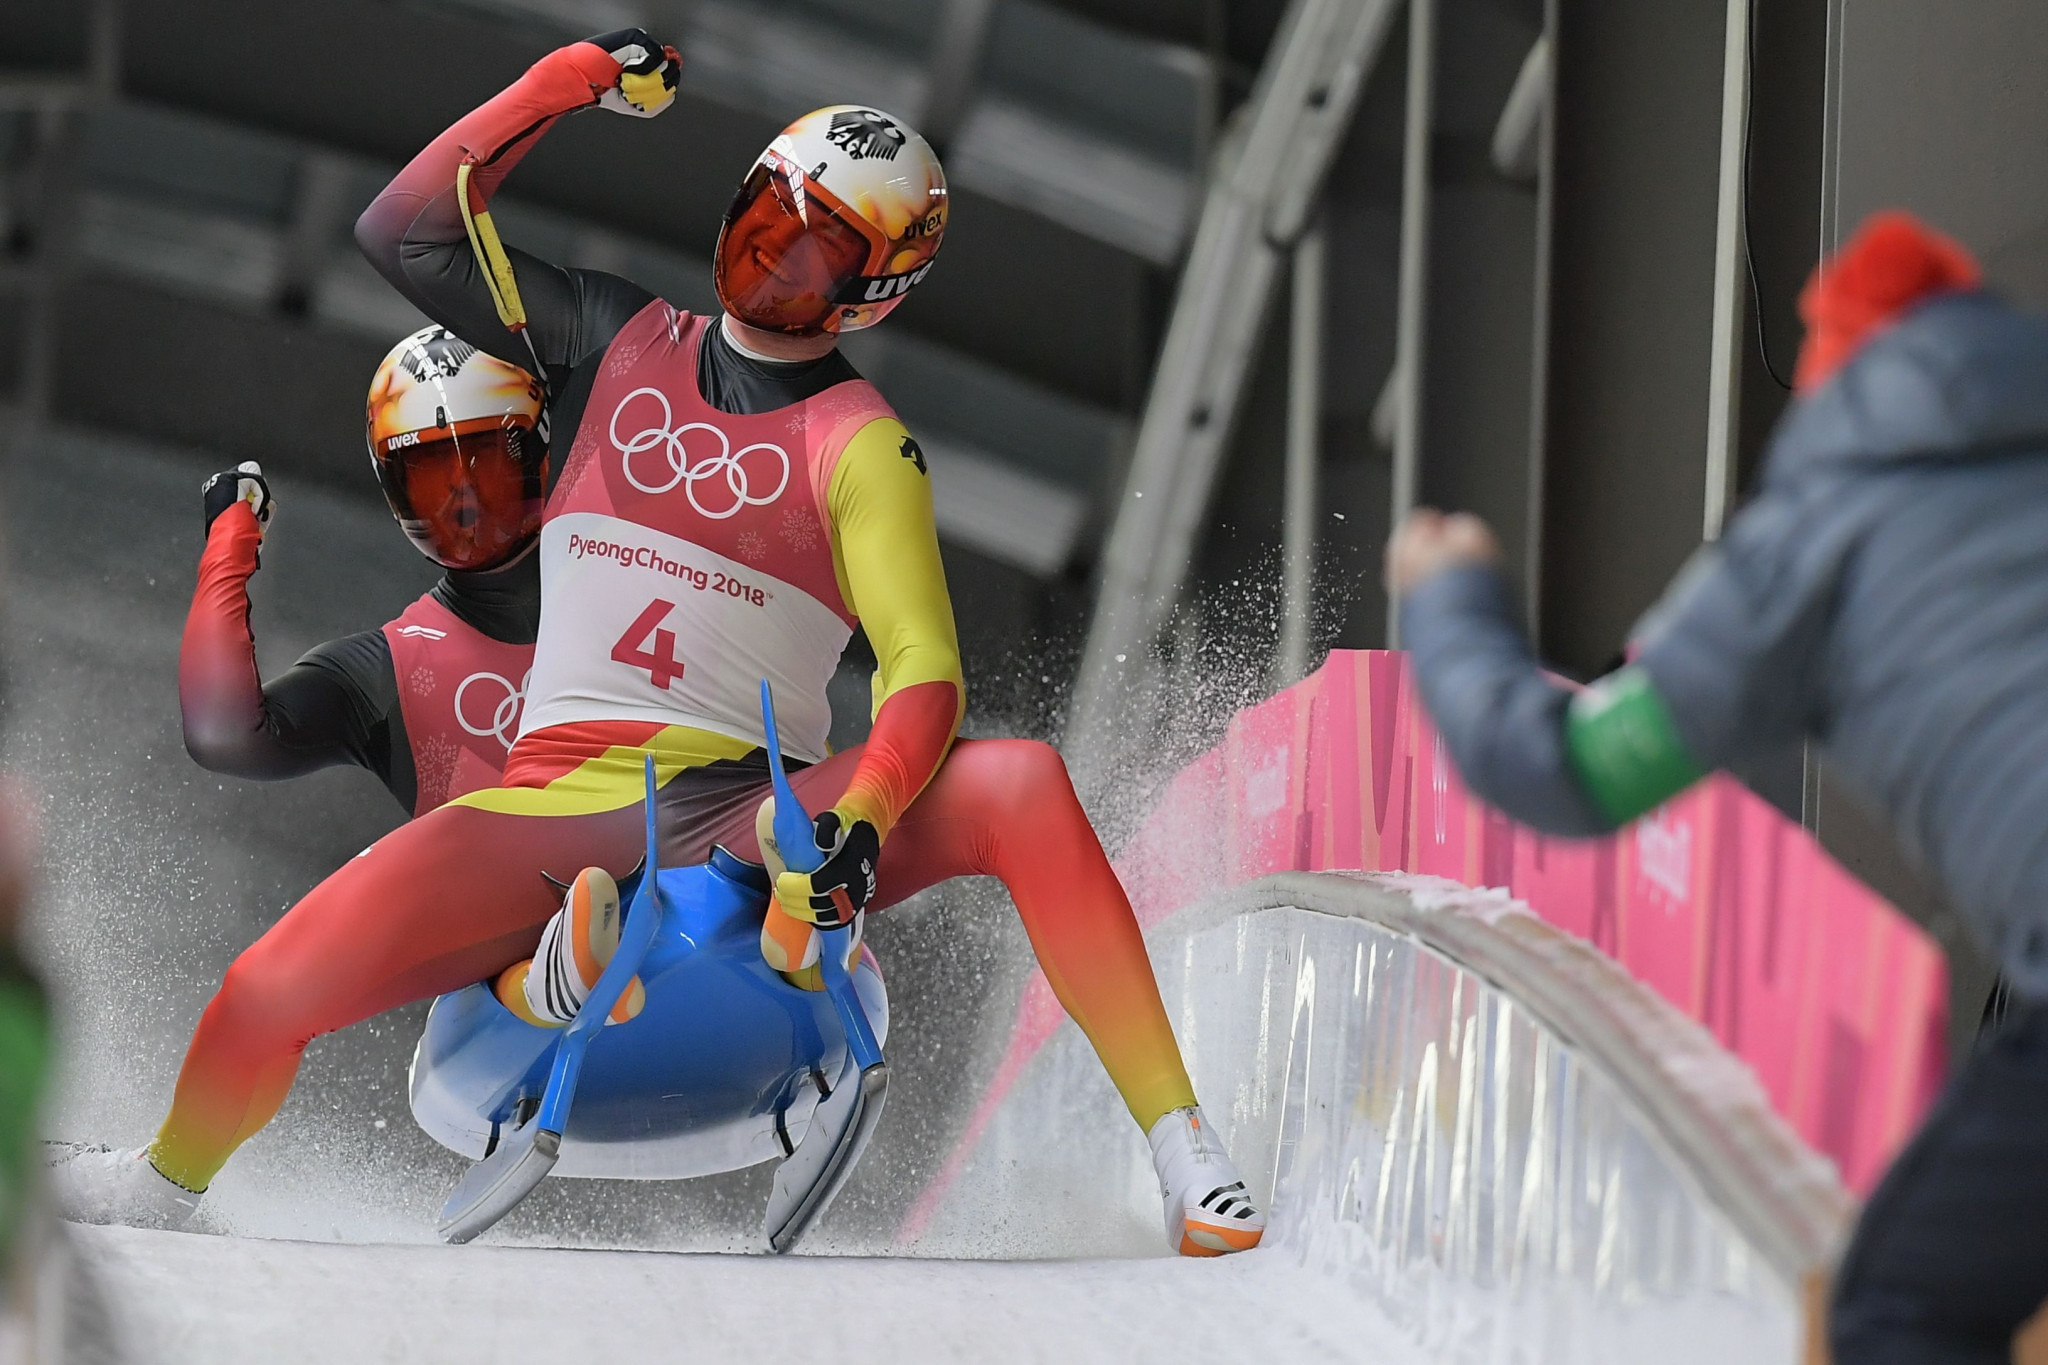 Germany's Toni Eggert and Sascha Benecken claimed the doubles Olympic bronze medal at  Pyeongchang 2018 ©Getty Images